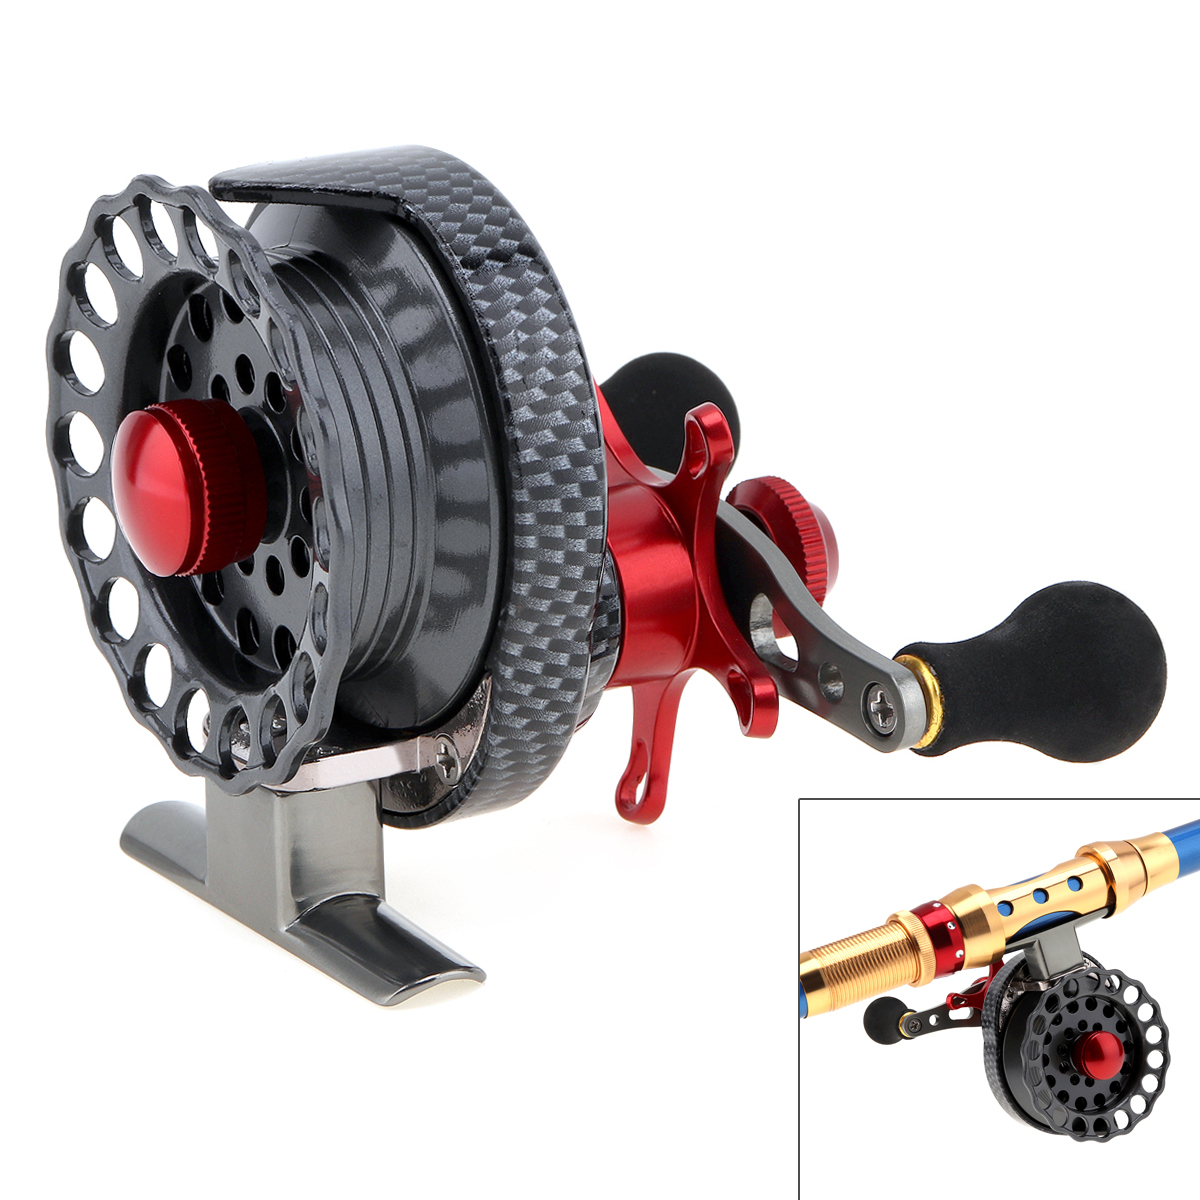 4+1BB 3.5:1 Gear Ratio Fly Fishing Reel Left/ Right Hand 65mm Former Raft Fishing Wheel With High Foot